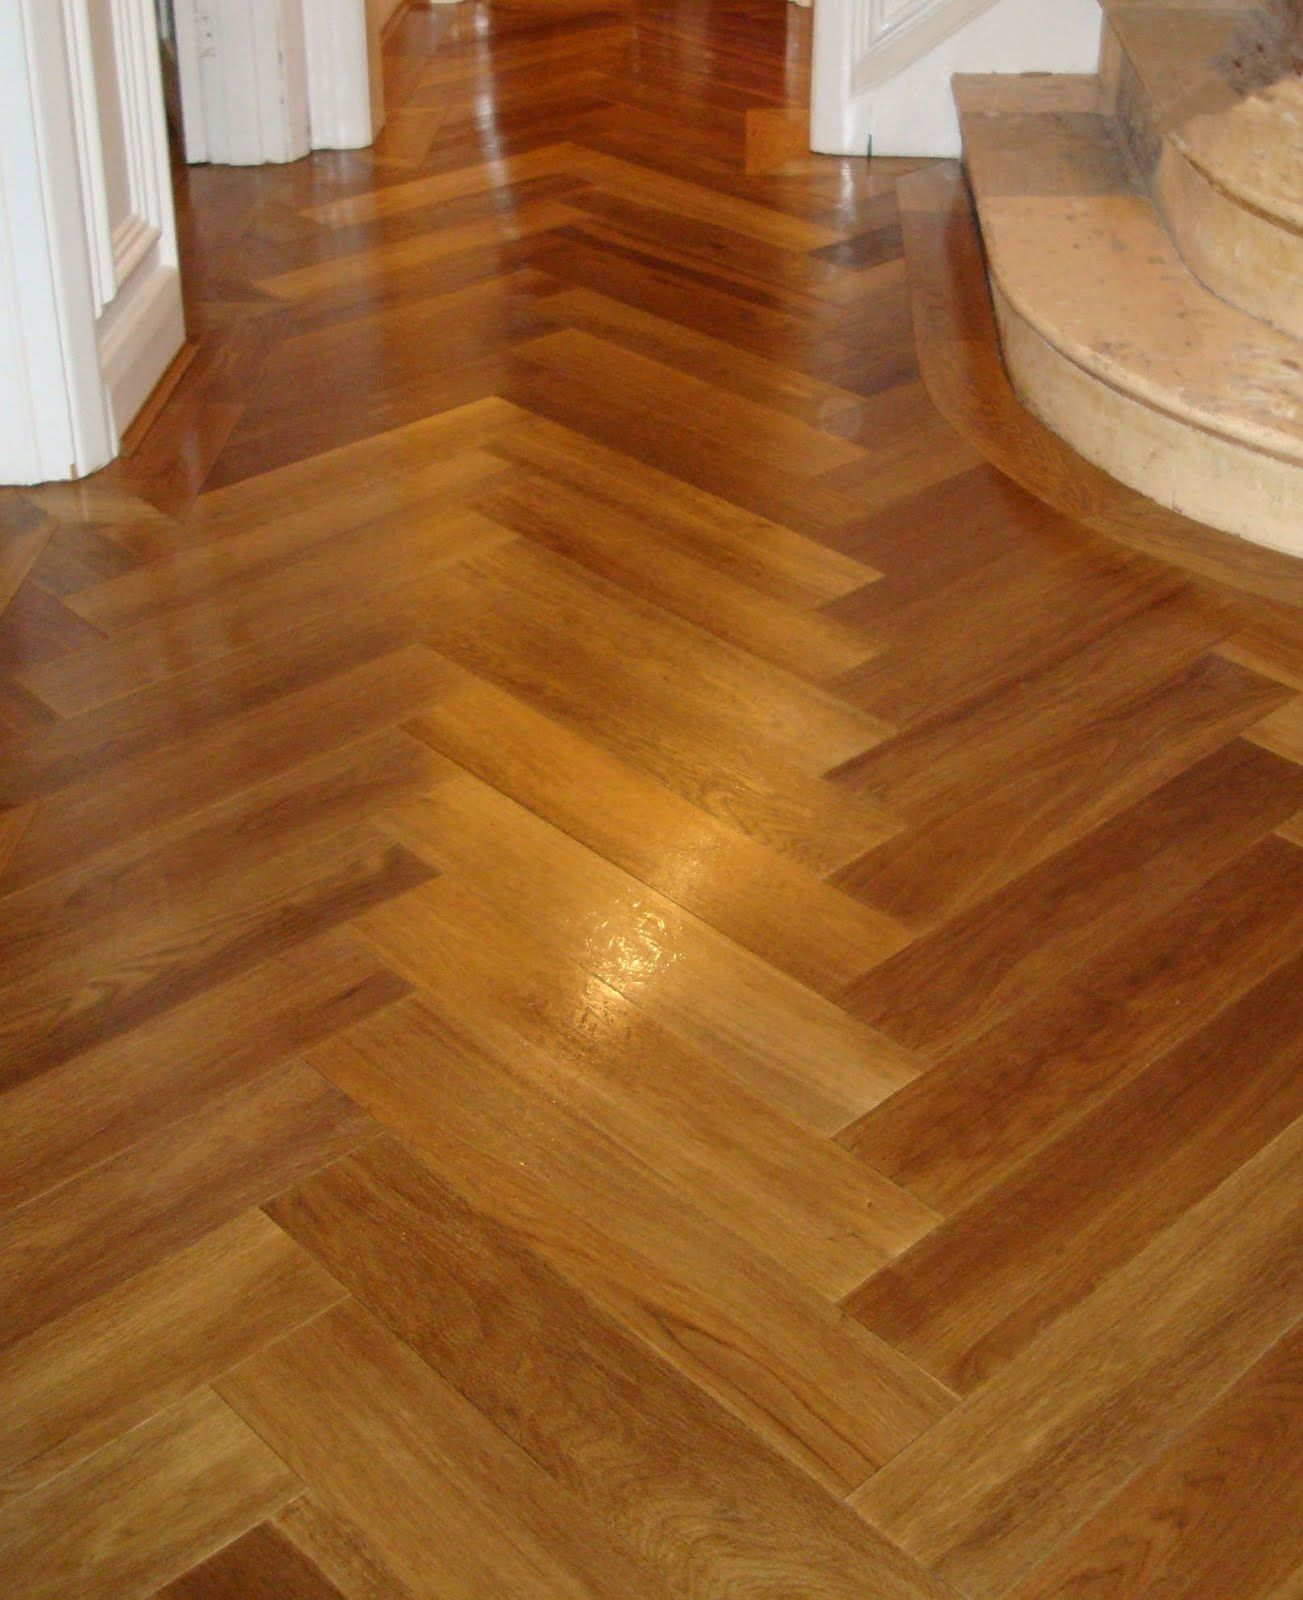 Wood Flooring Ideas | Wood Floor,Wood Floor Design,Wood Floor Design Ideas